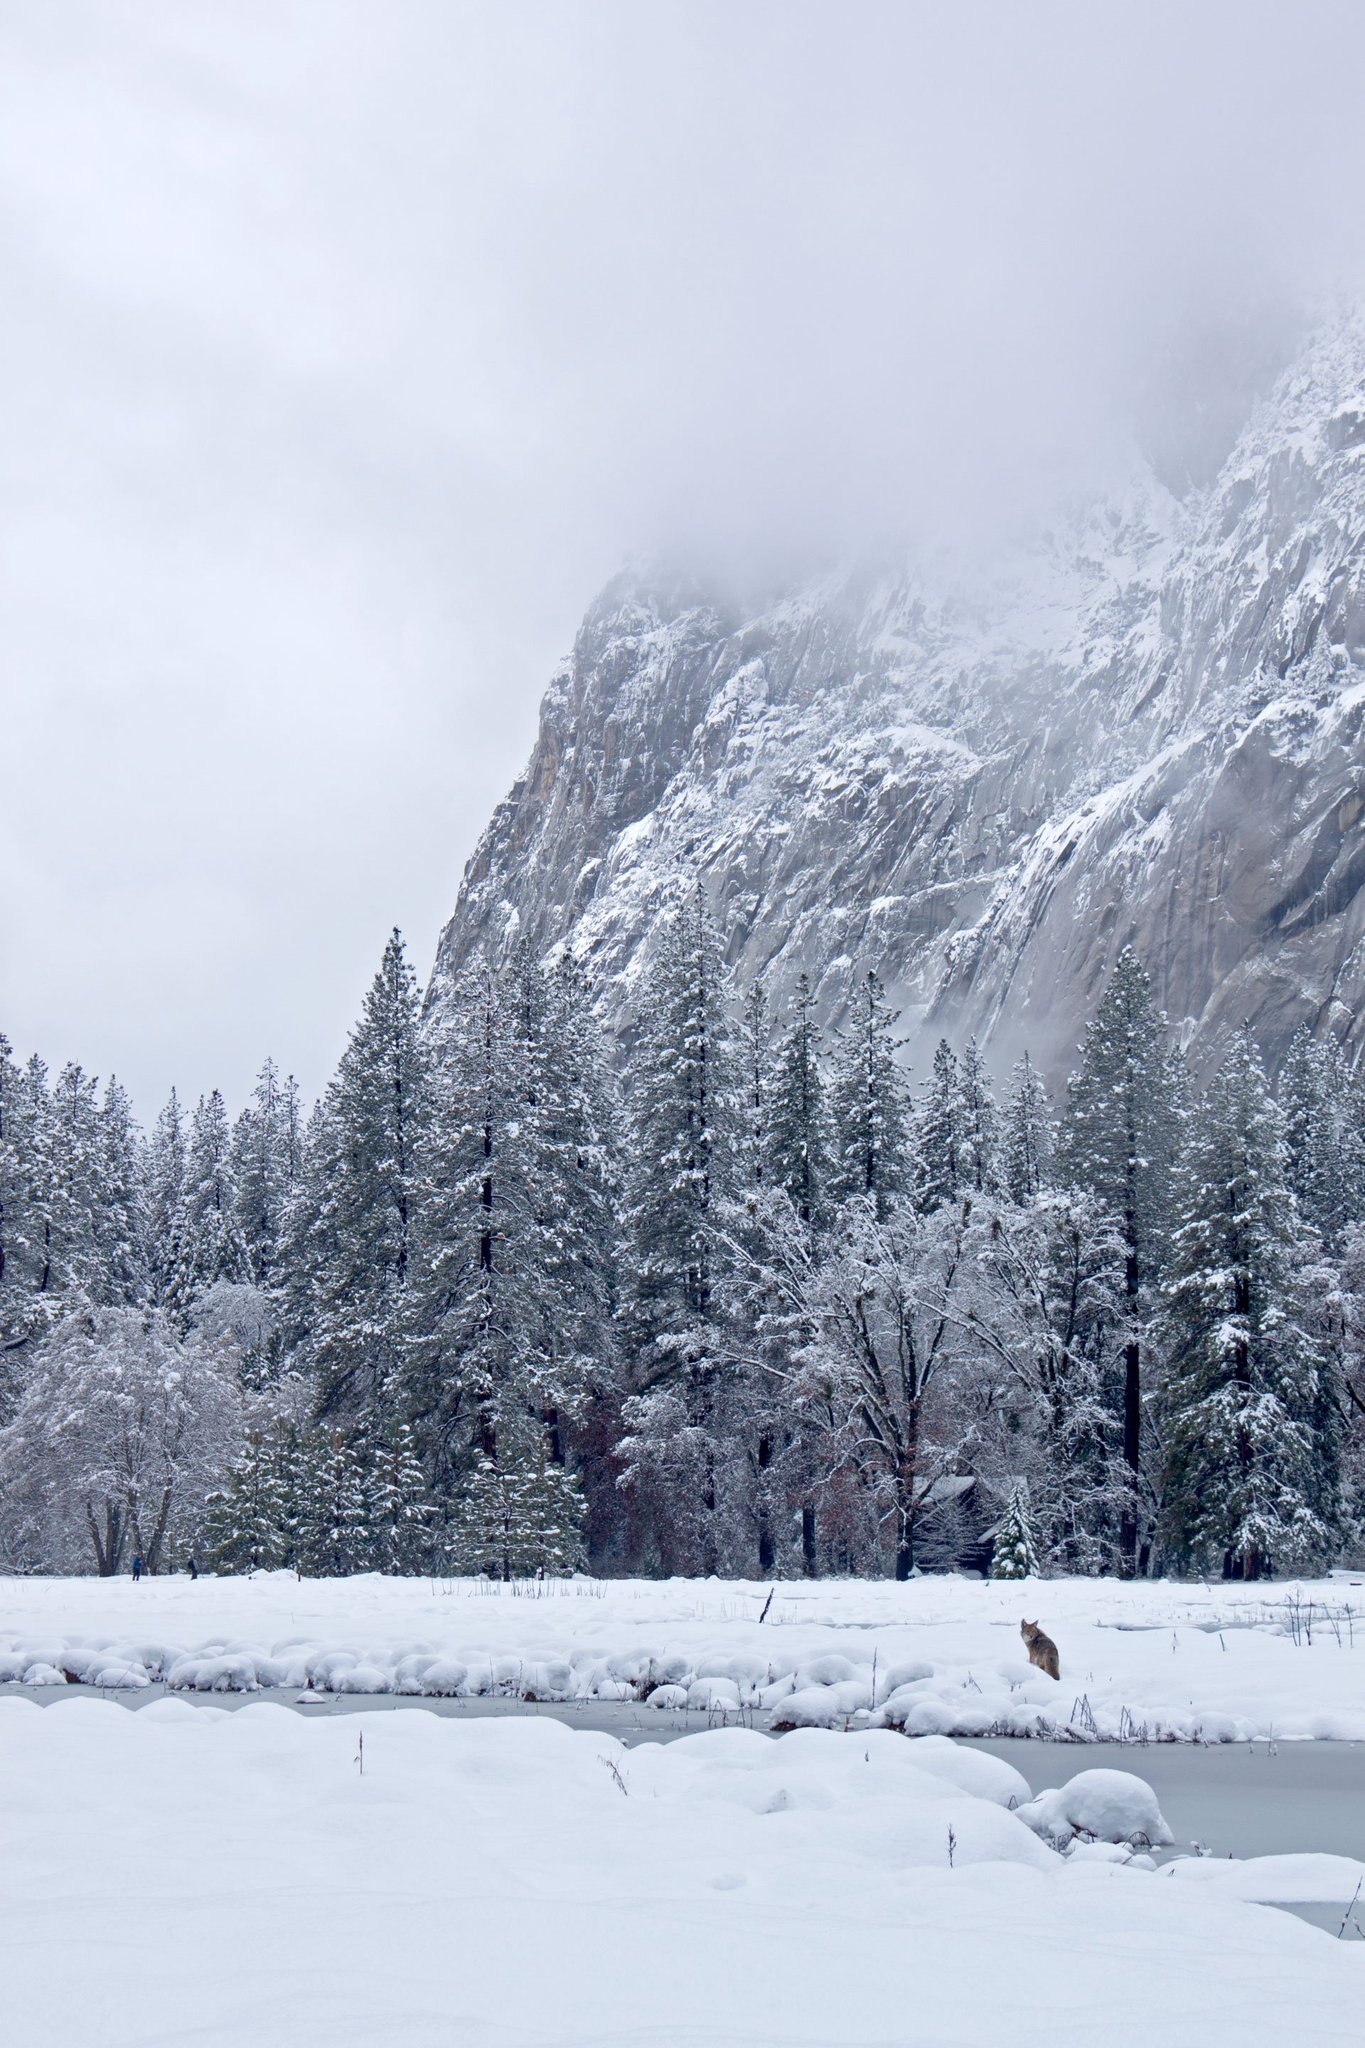 A coyote hunts in Cook's Meadow on a peaceful winter morning.  #yosemite #nationalpark https://t.co/SrkXtWJiPV